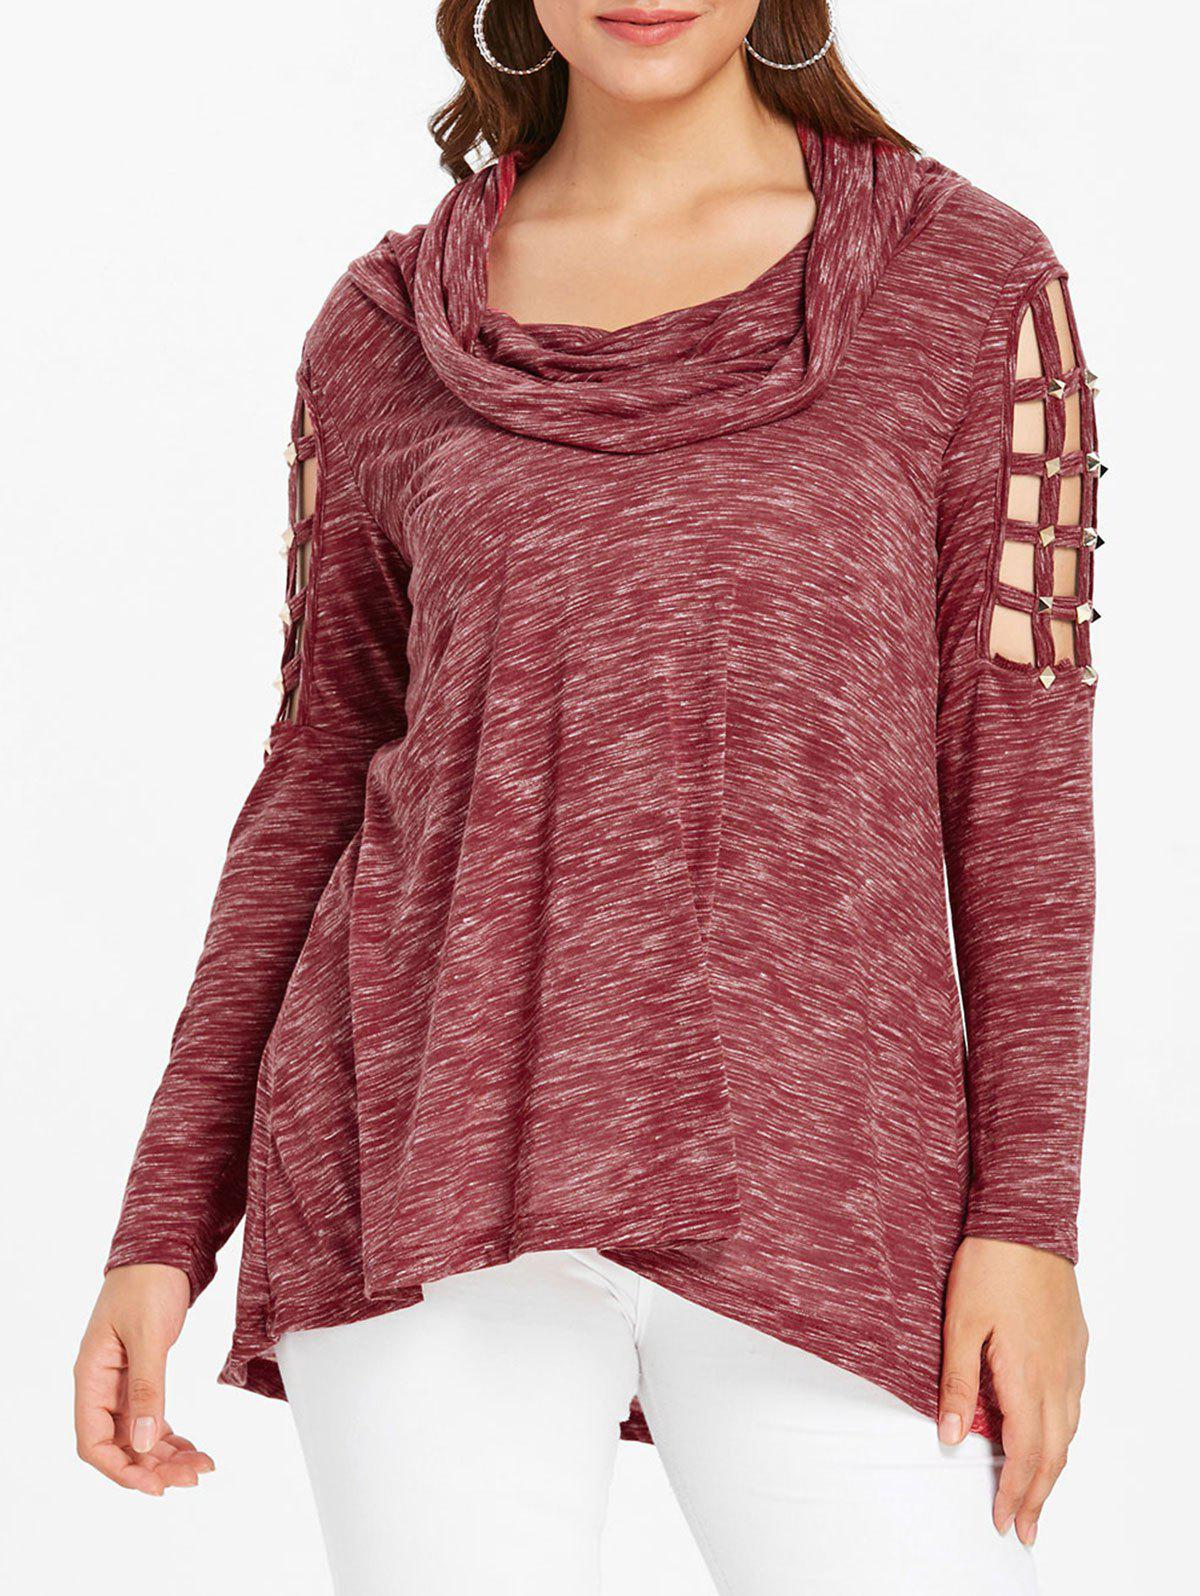 Plus Size Lattice Cutout Cowl Neck T-shirt - RED 1X